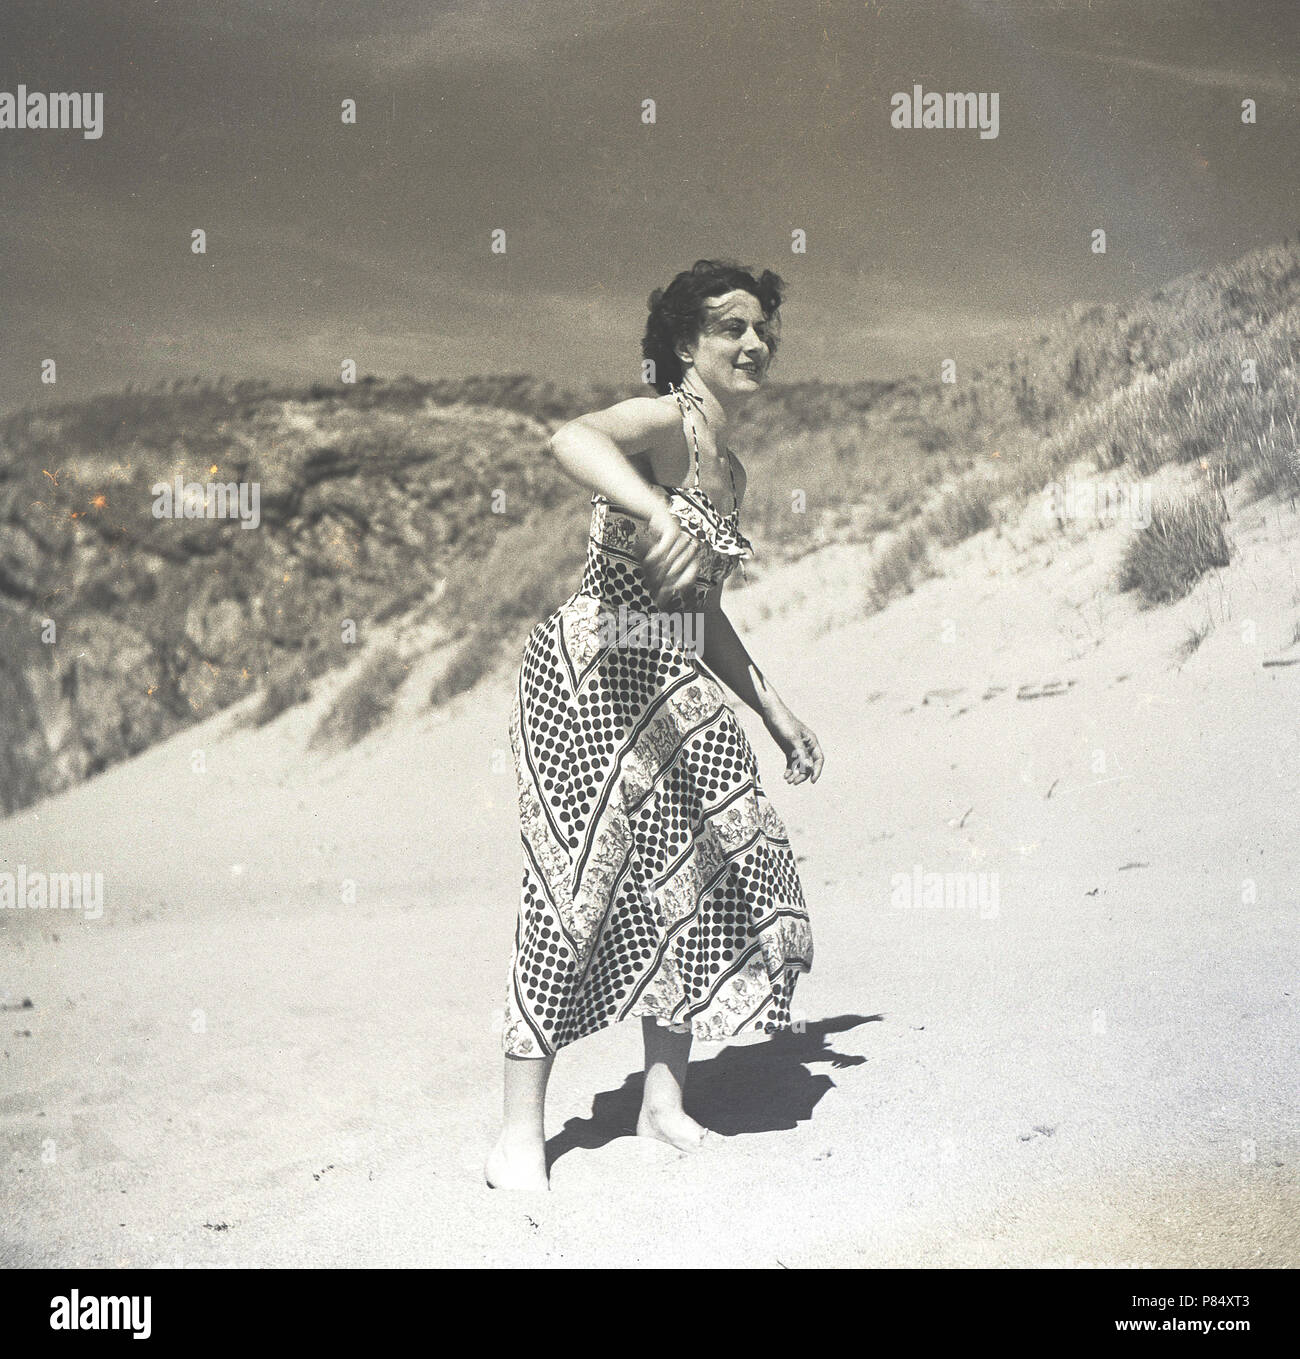 1950s, summertime and a young lady in a long patterned dress playing frisbee on a sandy beach, England, UK. Stock Photo